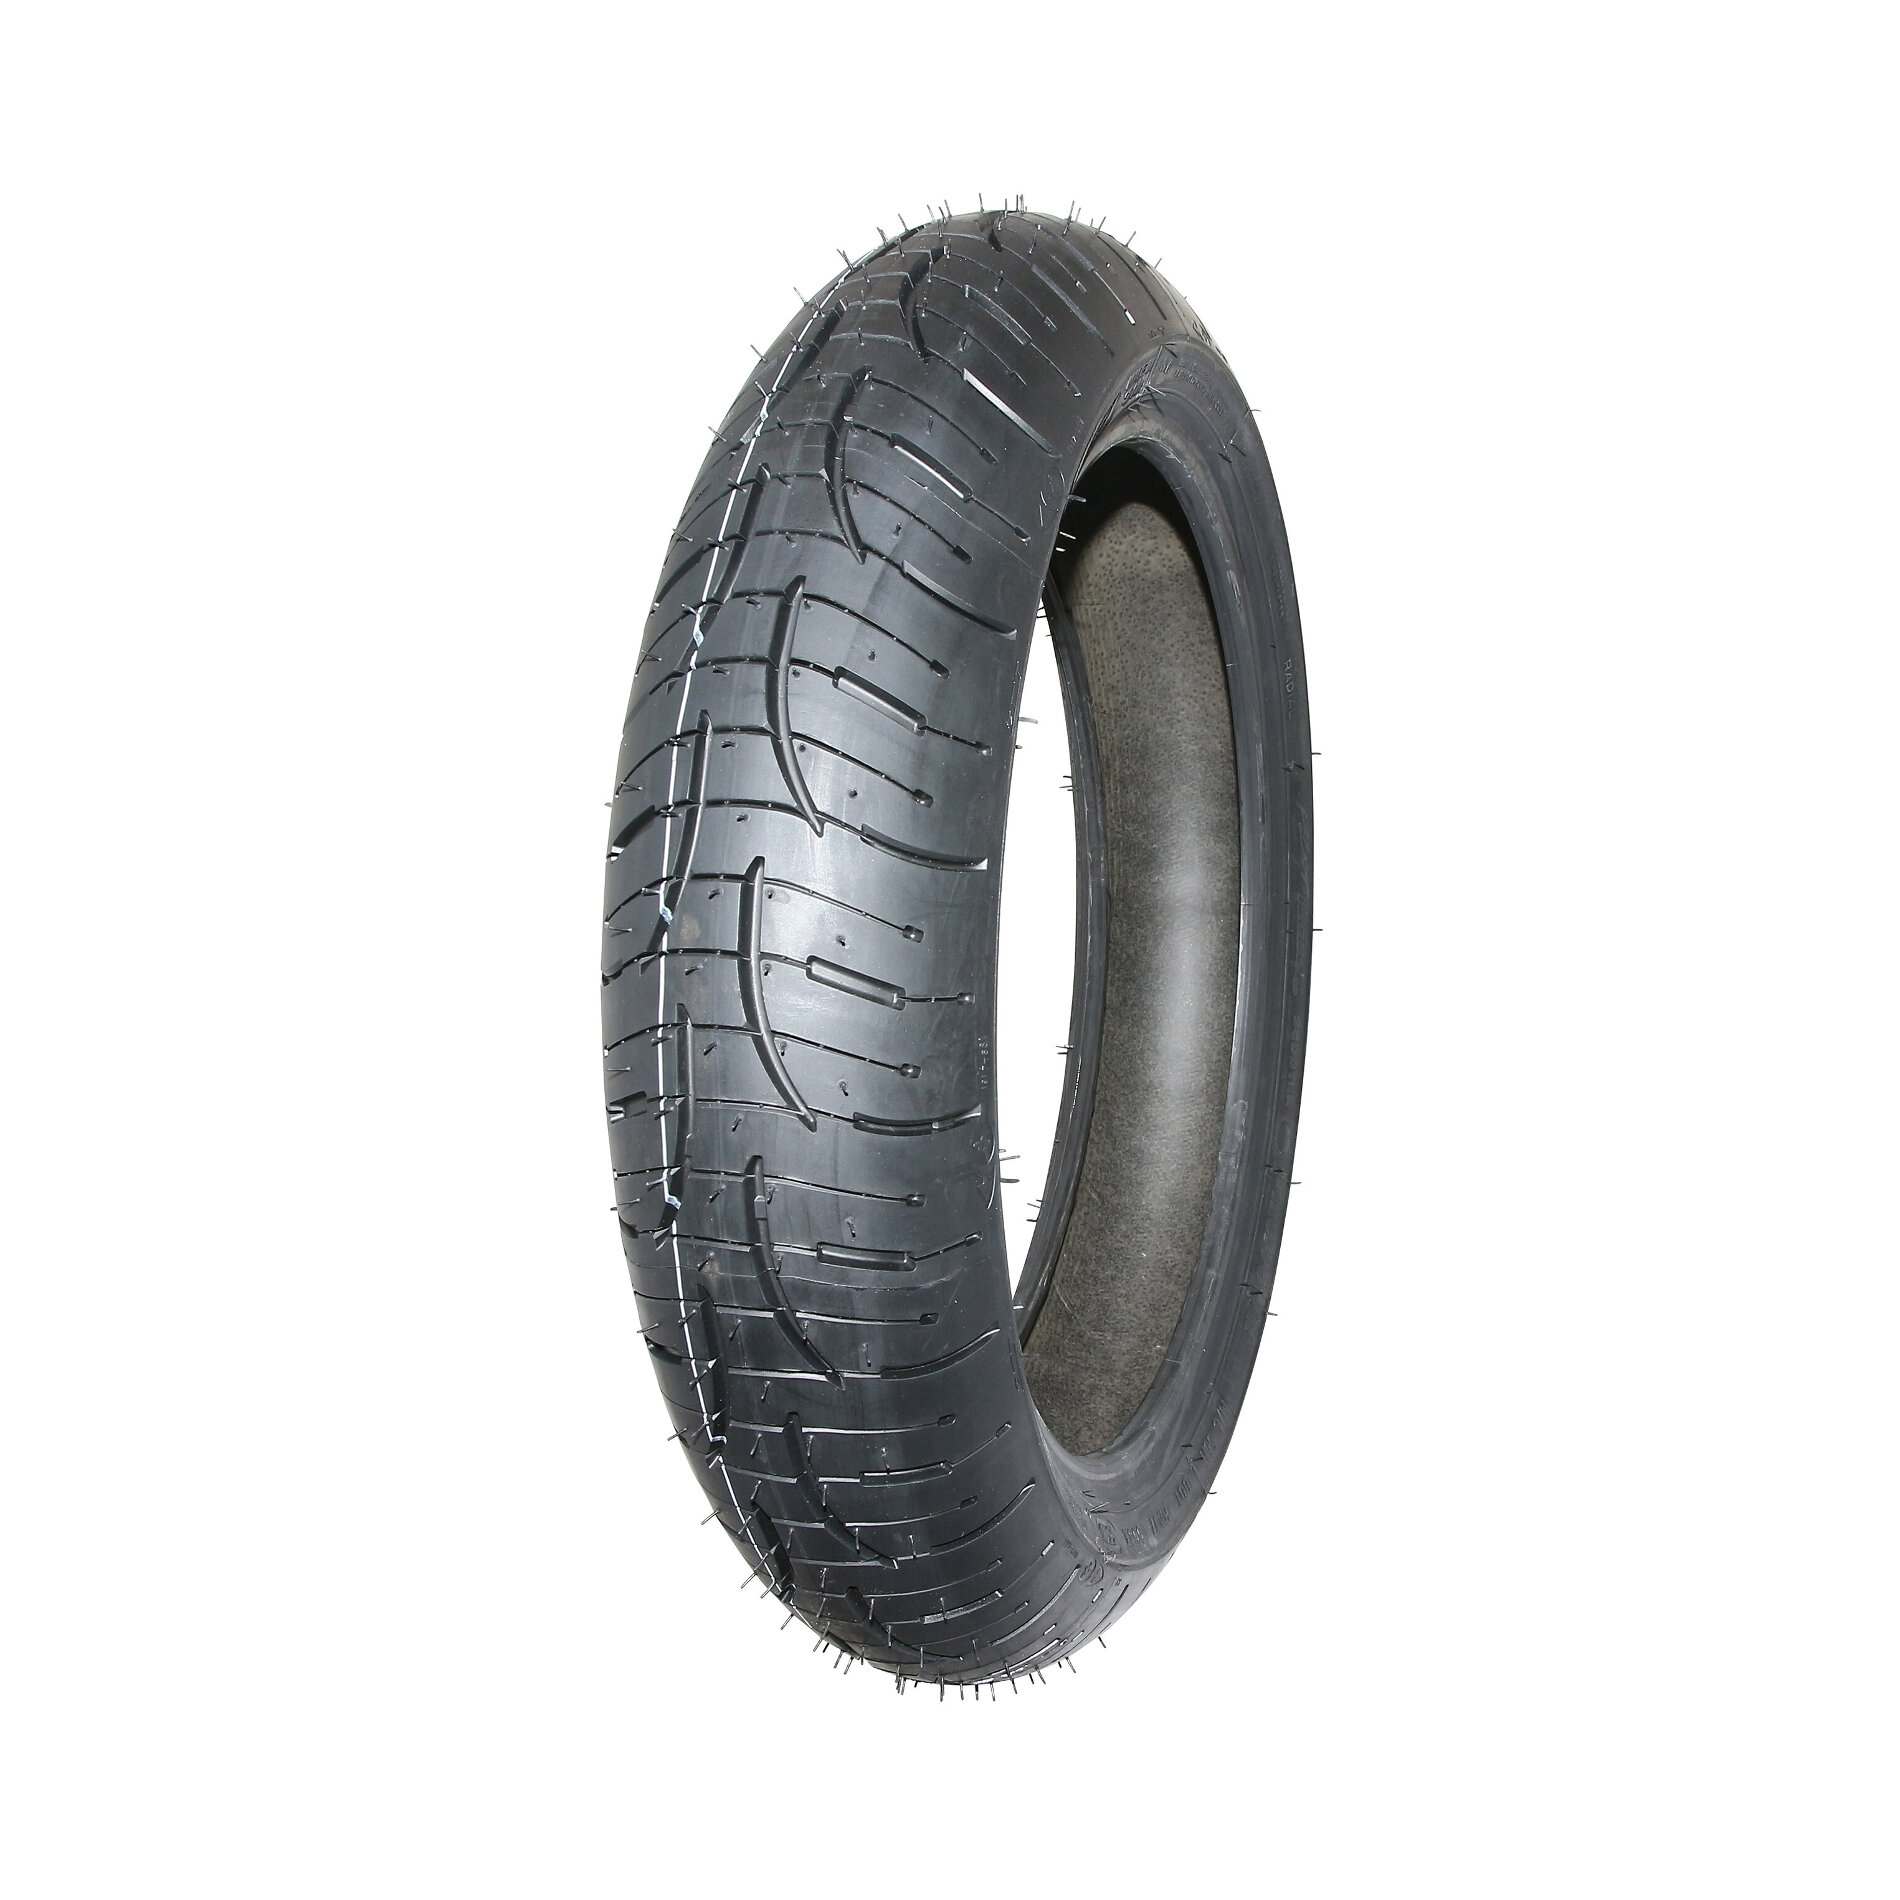 Pneu scooter avant Michelin Pilot Road 4 120/70 R 15 56H TL